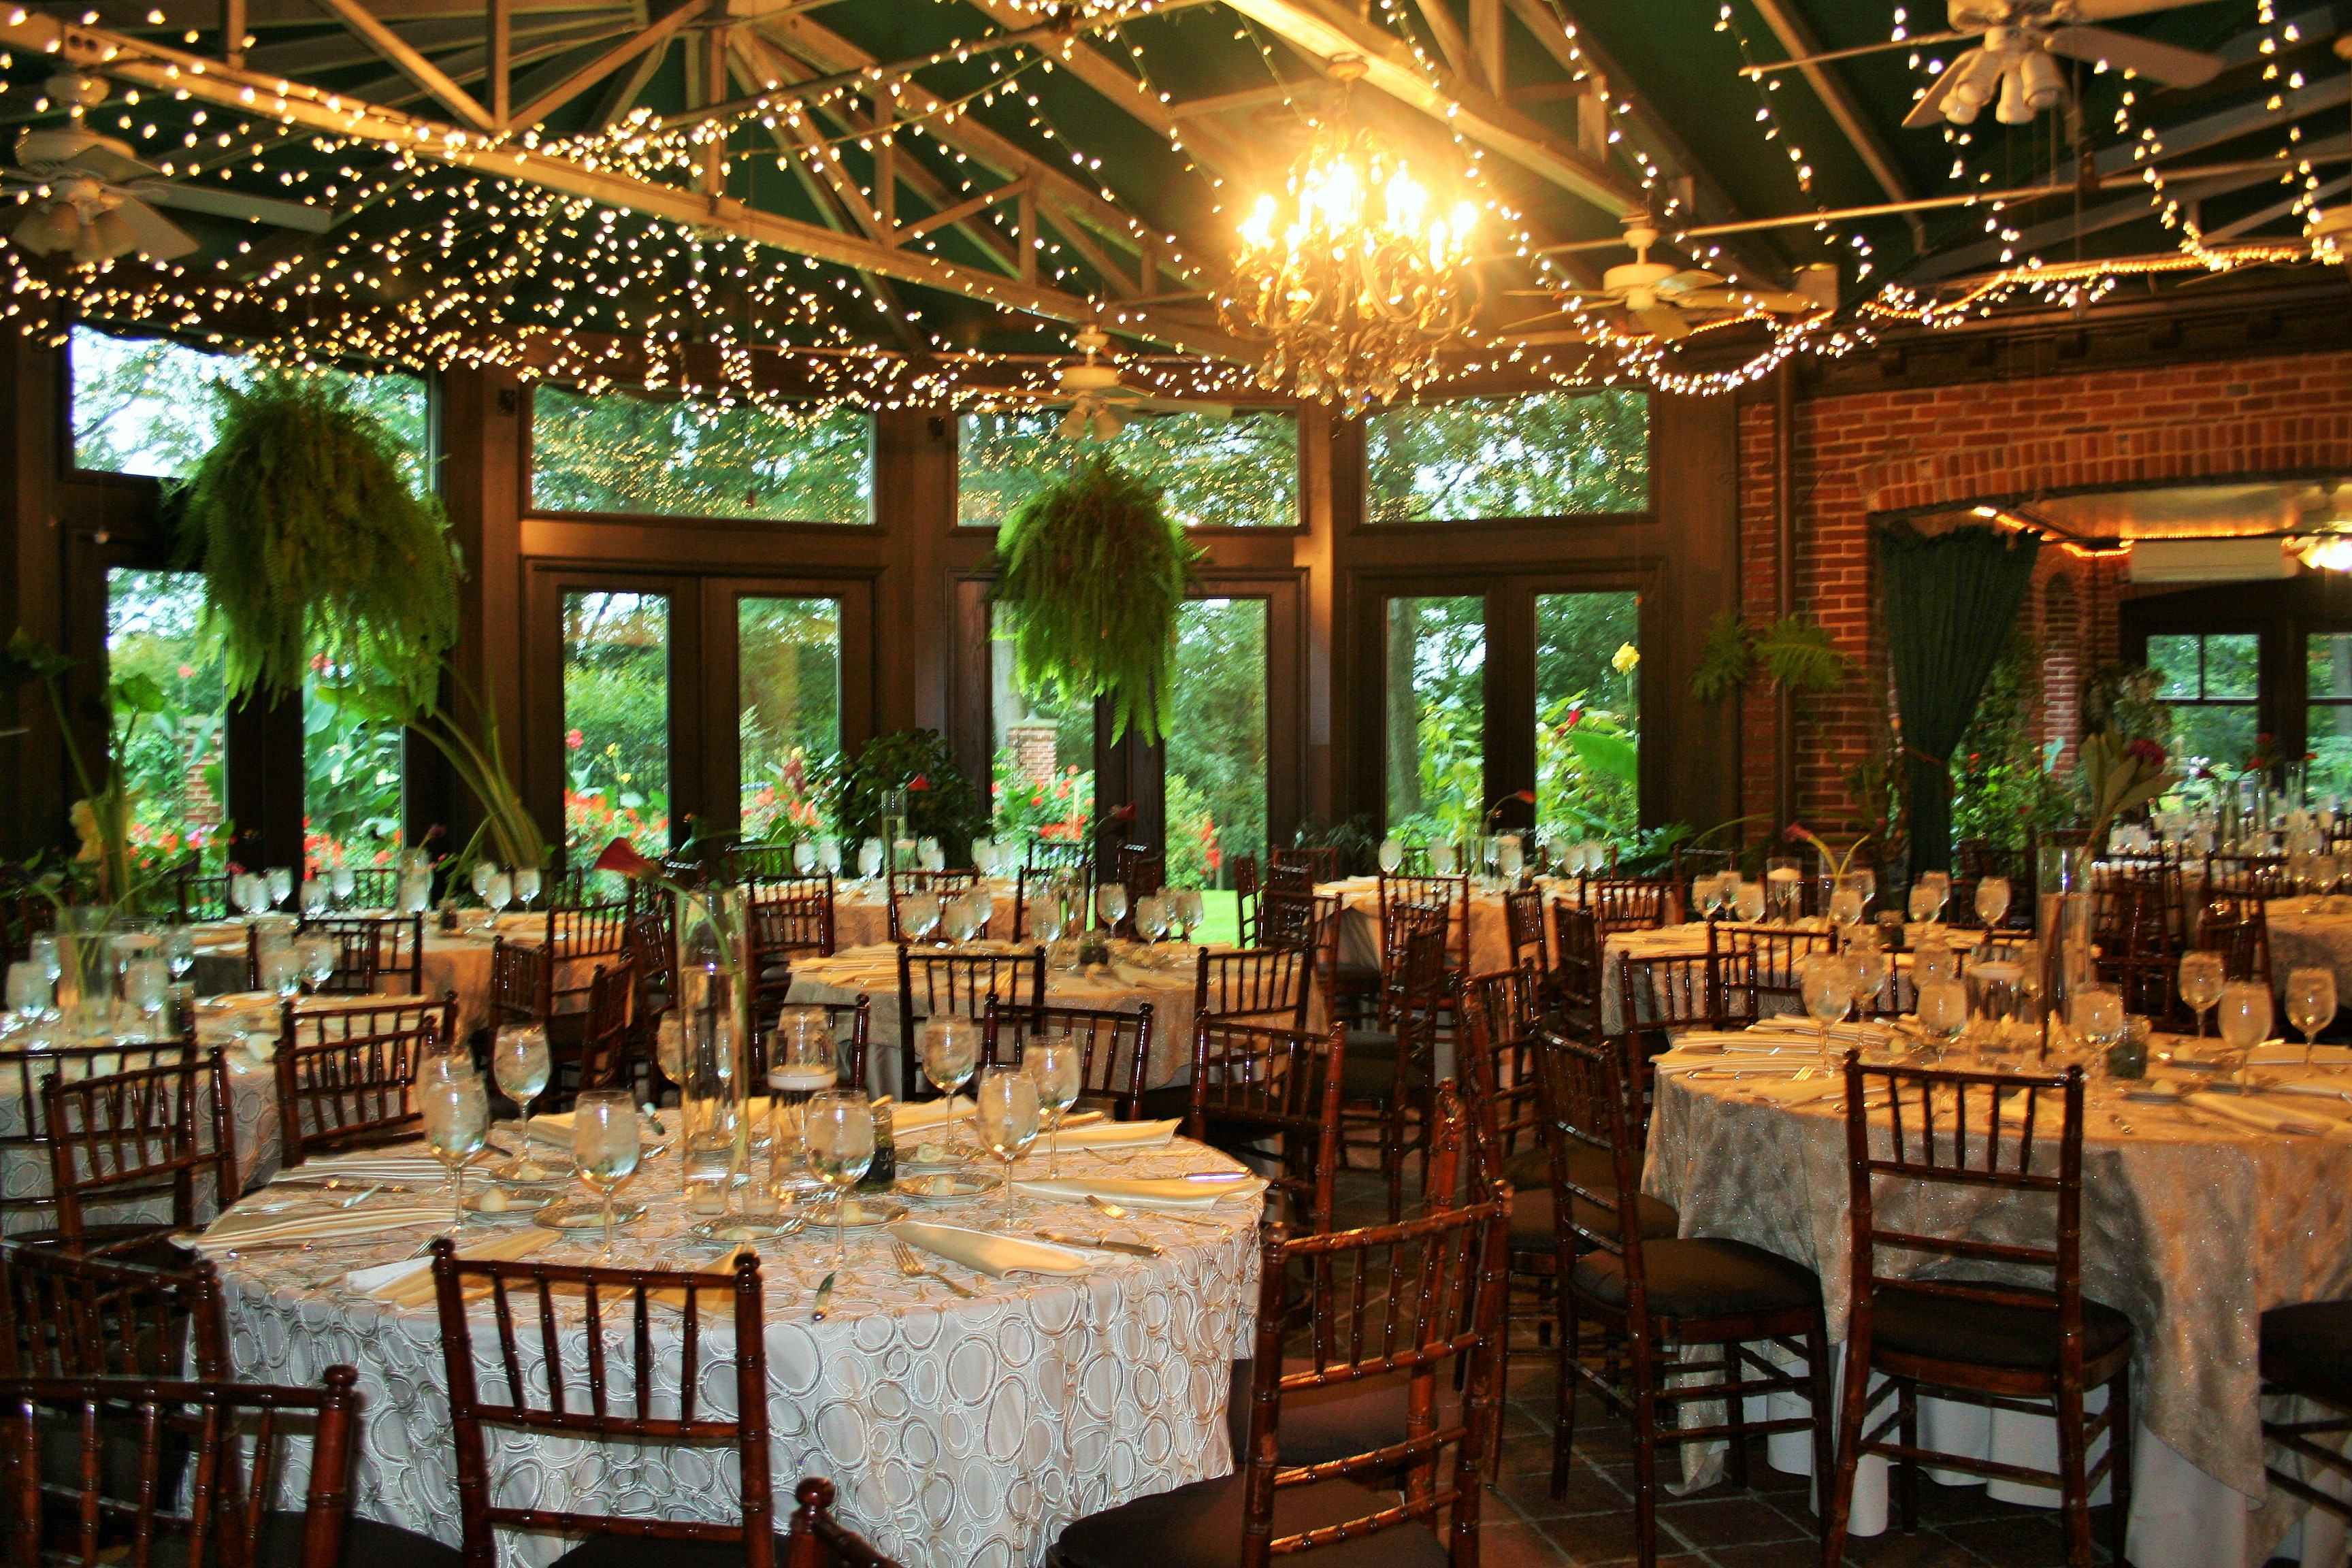 round table with chairs inflatable chair target gramercy mansion bed & breakfast | partyspace